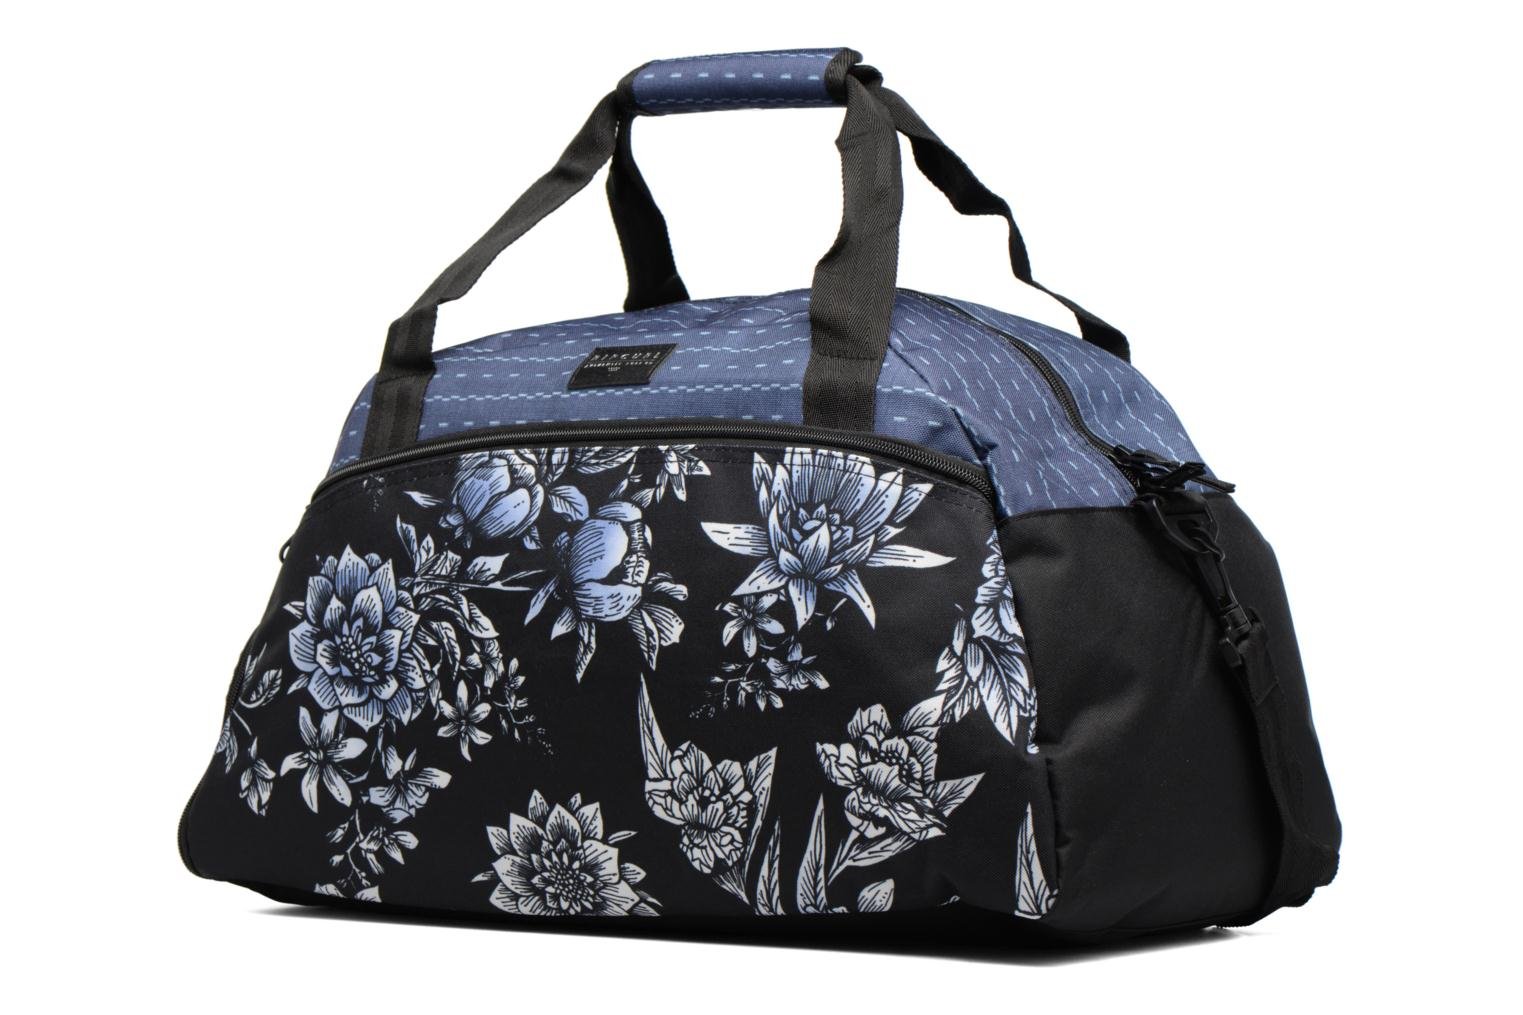 Zephyr Weekend Bag Black